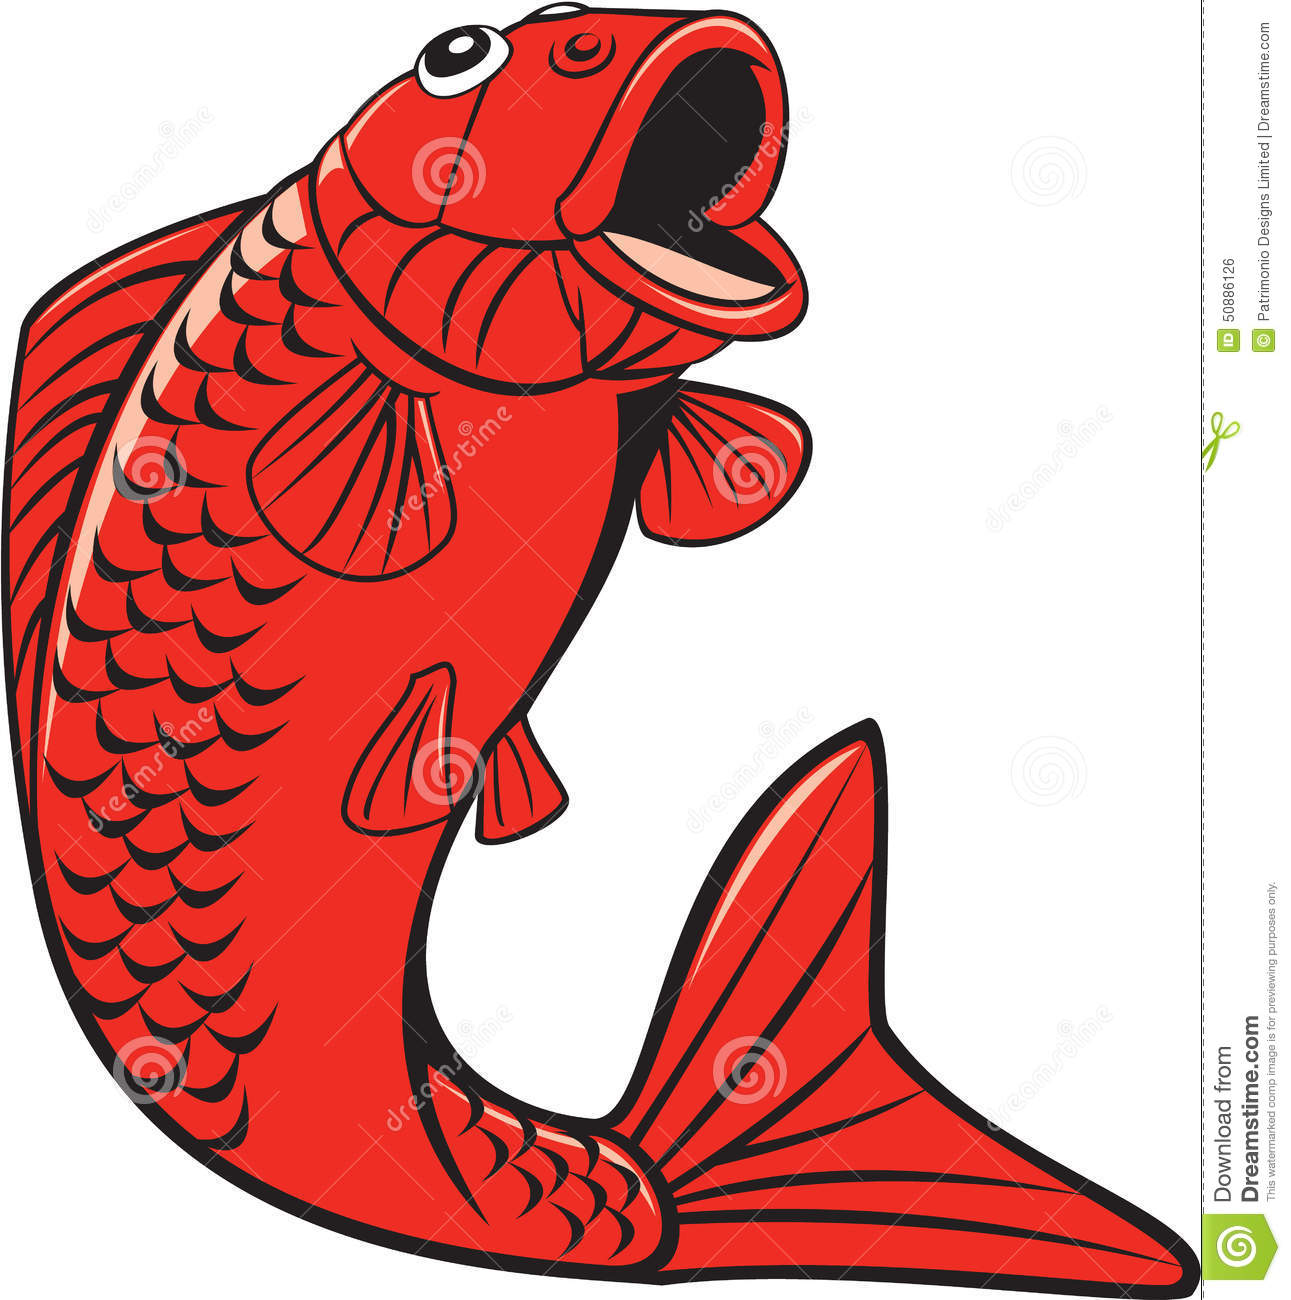 Koi Fish Clipart at GetDrawings.com | Free for personal use Koi Fish ...